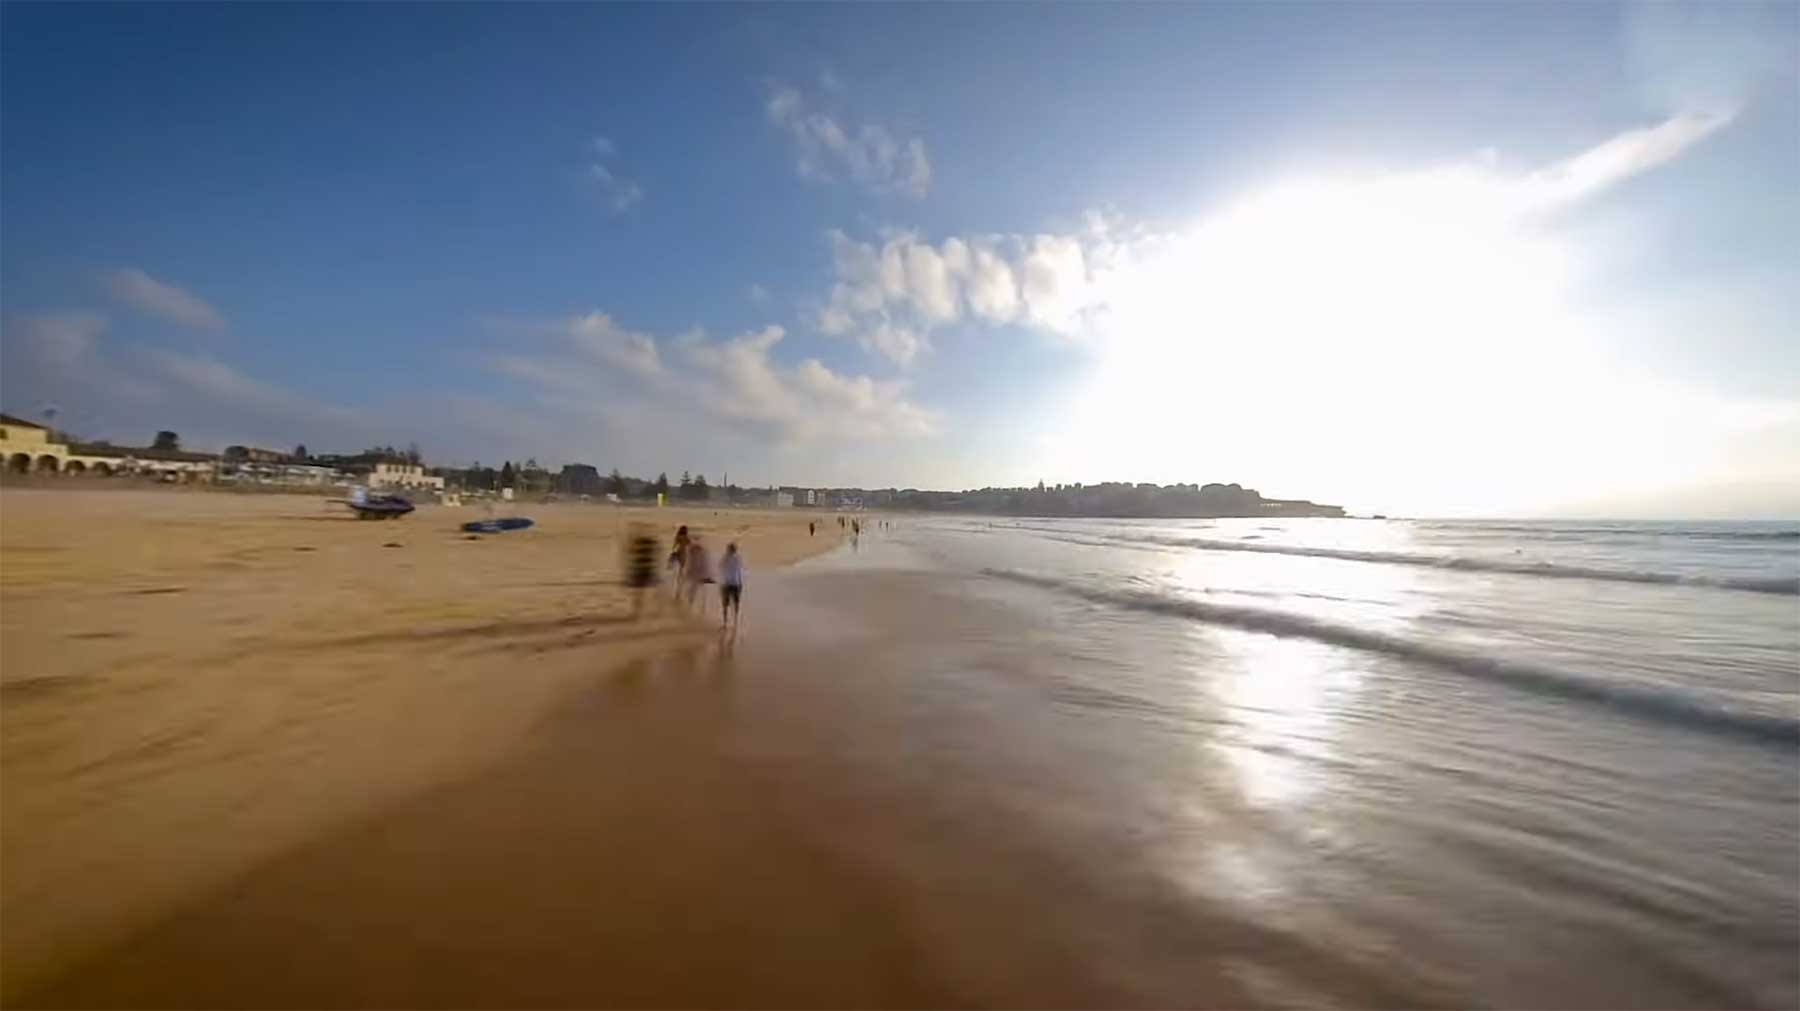 80 Kilometer Strandspaziergang in 5 Minuten bondi-to-manly-walk-hyperlapse